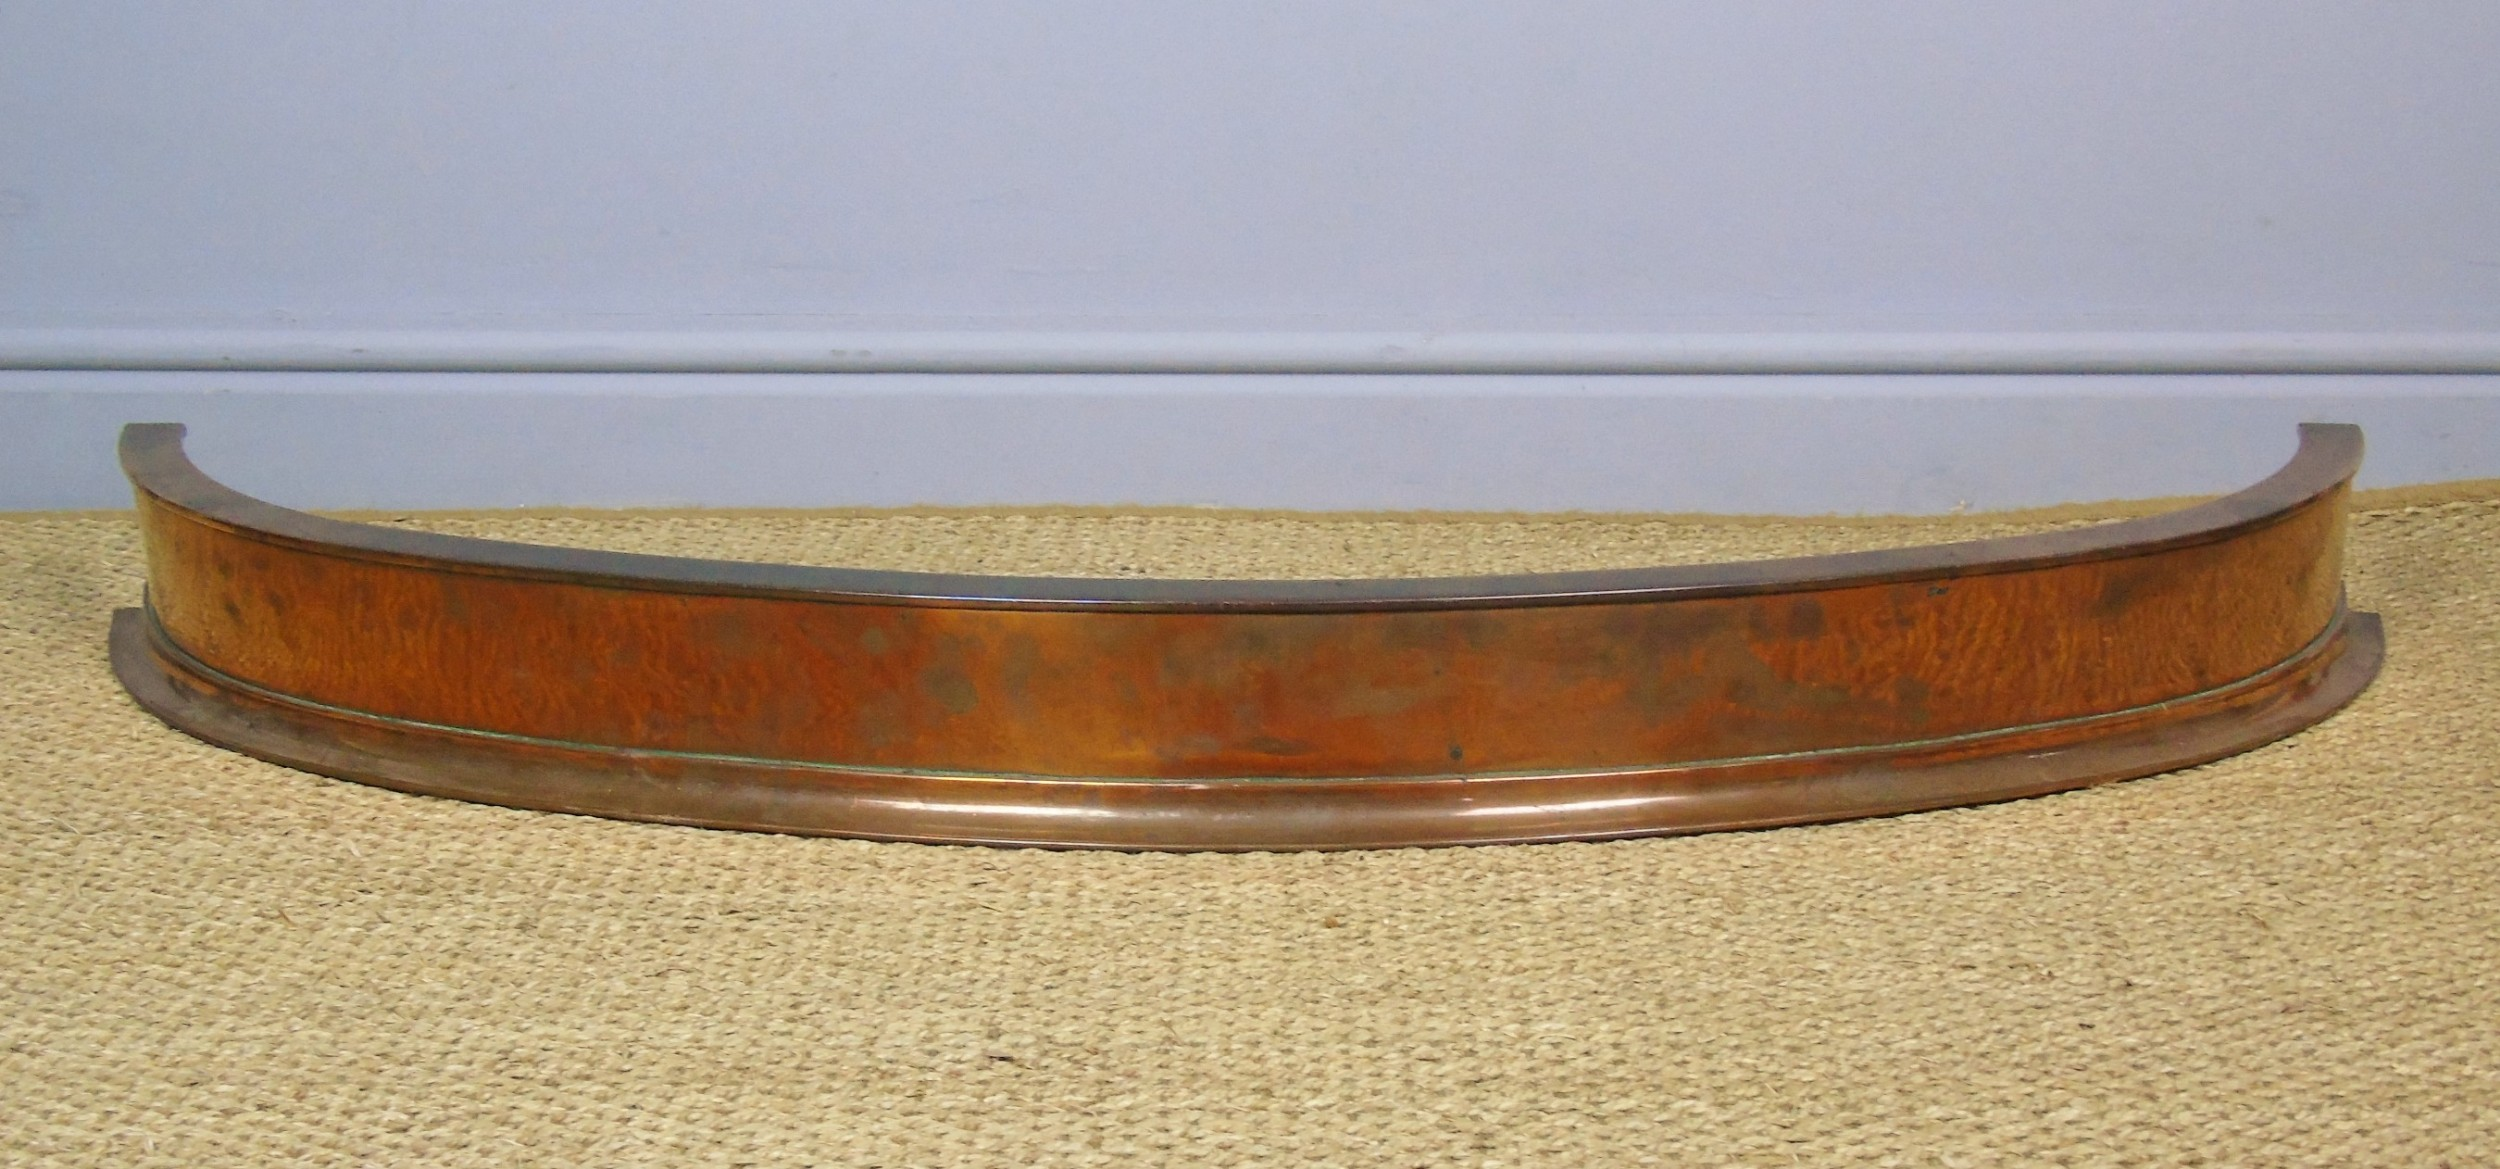 good quality 19th century solid curved copper fender